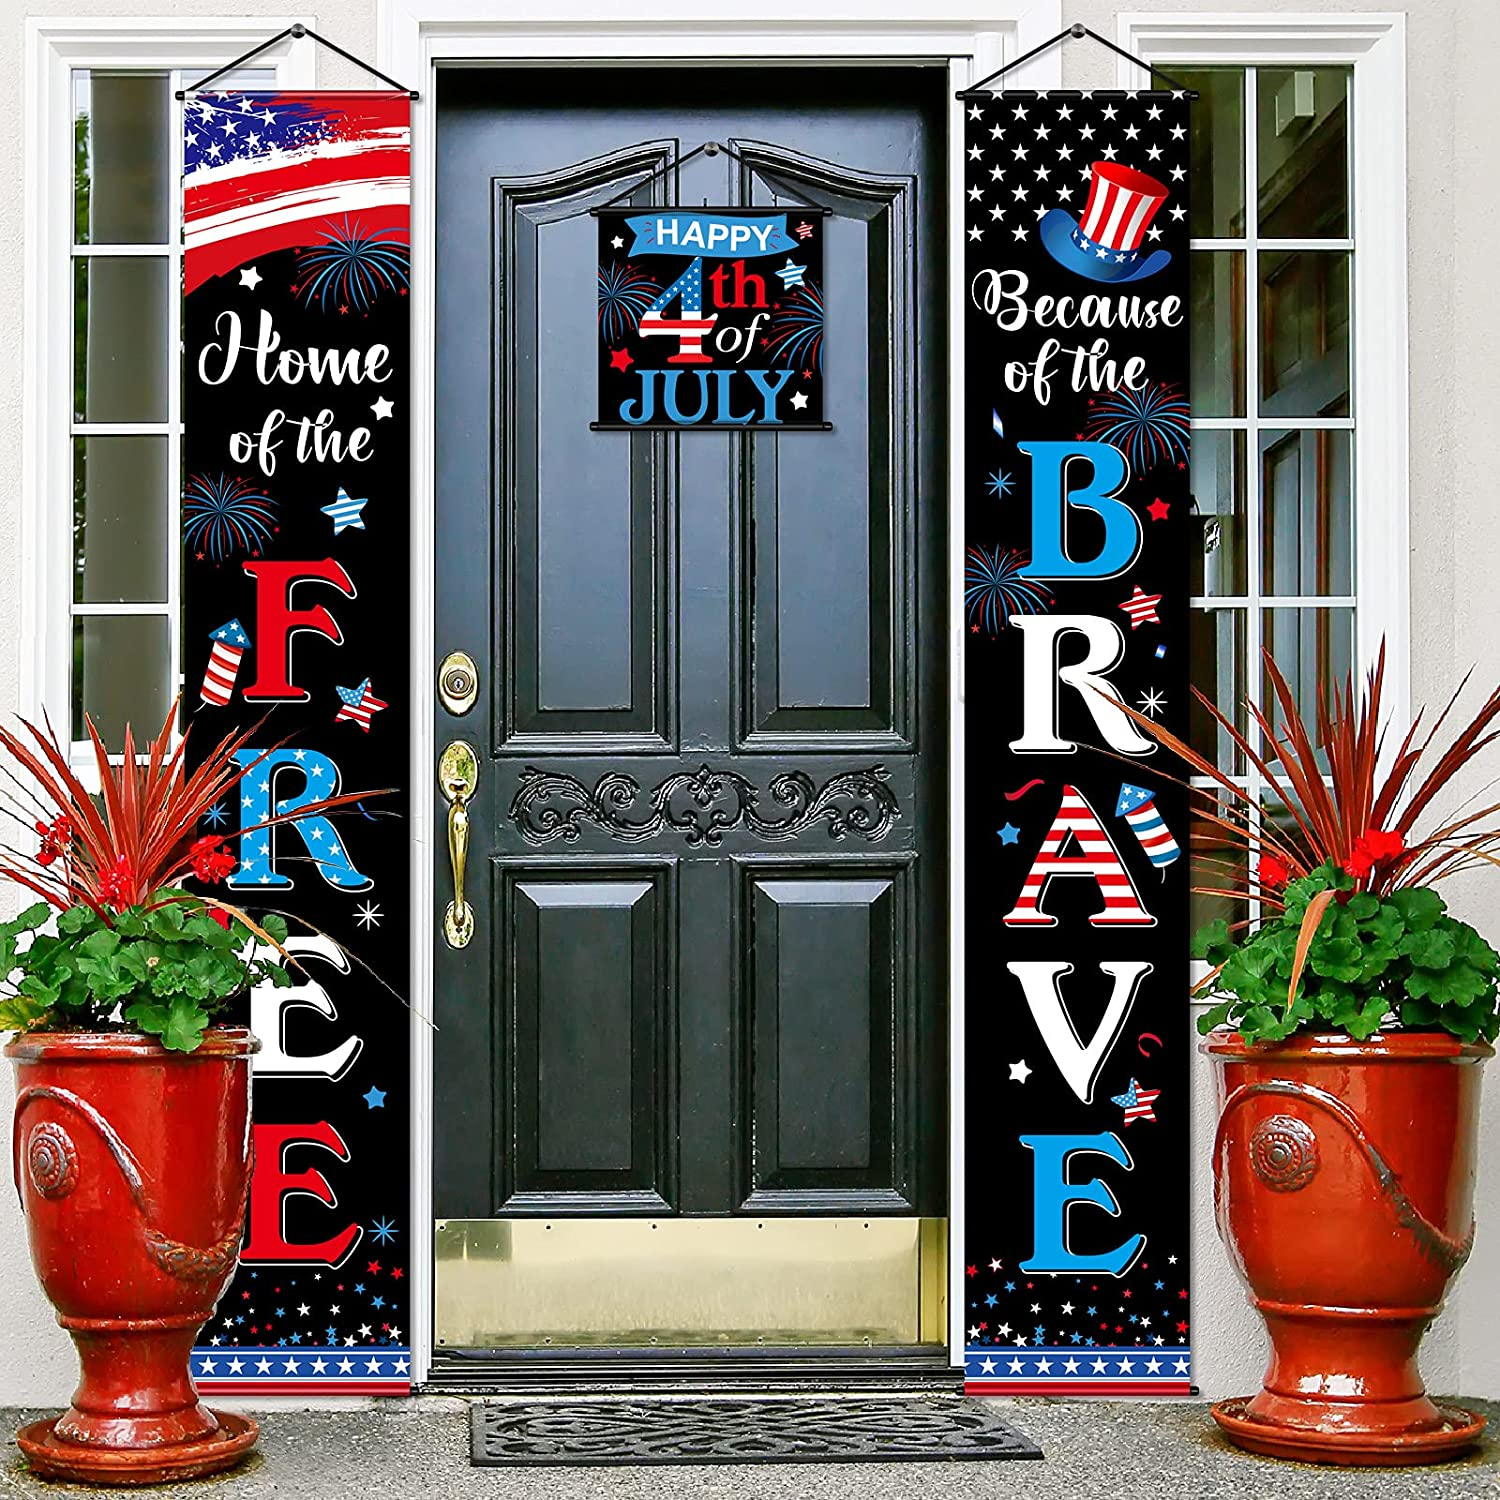 3 Pieces 4th of July Decoration Independence Day Patriotic Banner Flag Home of The Free and Because of The Brave Veterans Day Hanging Sign Set for House Yard Porch Garden Indoor Outdoor Party Supply